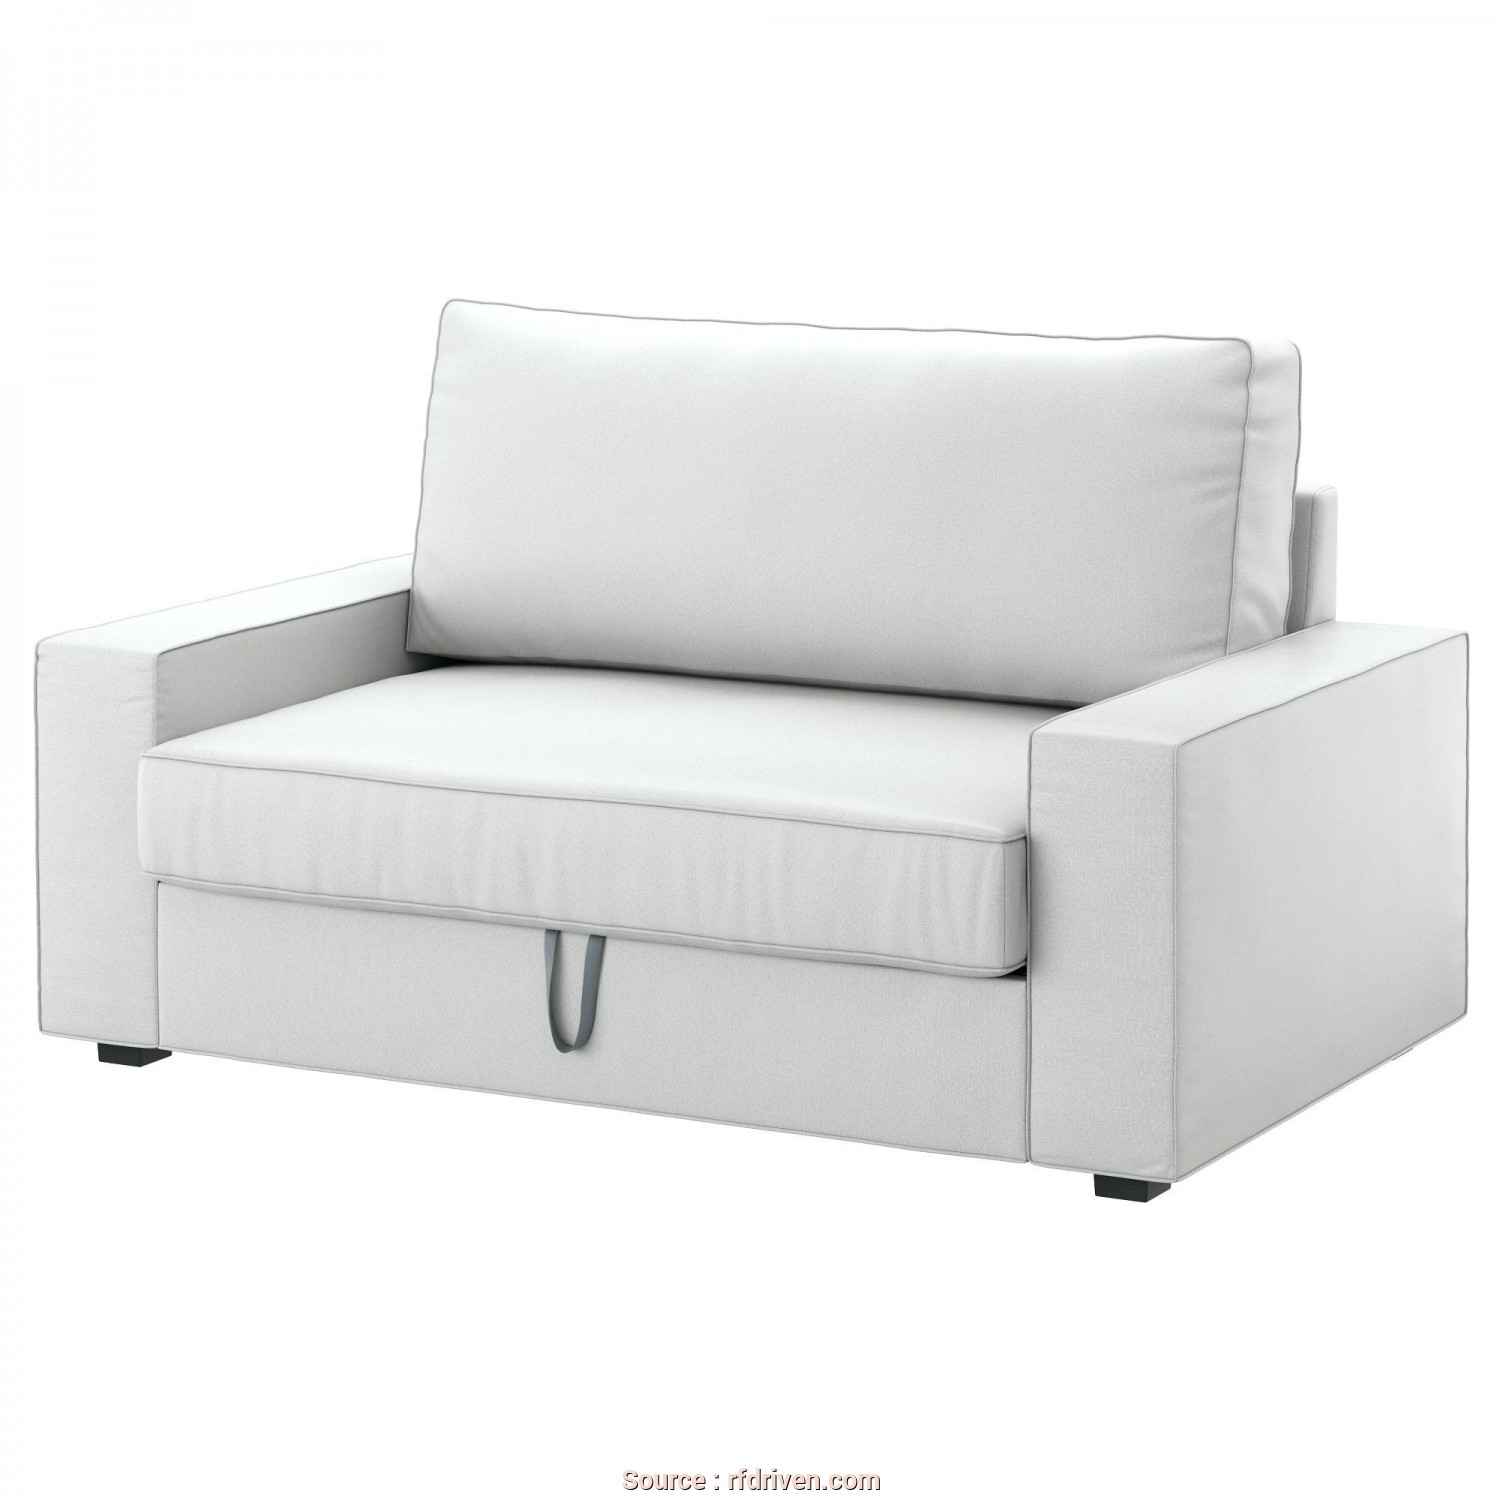 Canape Futon Convertible 2 Places Ikea, Bello Canapé Design 2 Places Inspirant Ikea, 2 Places 33 Canape Convertible 3 Best Articles With Tag